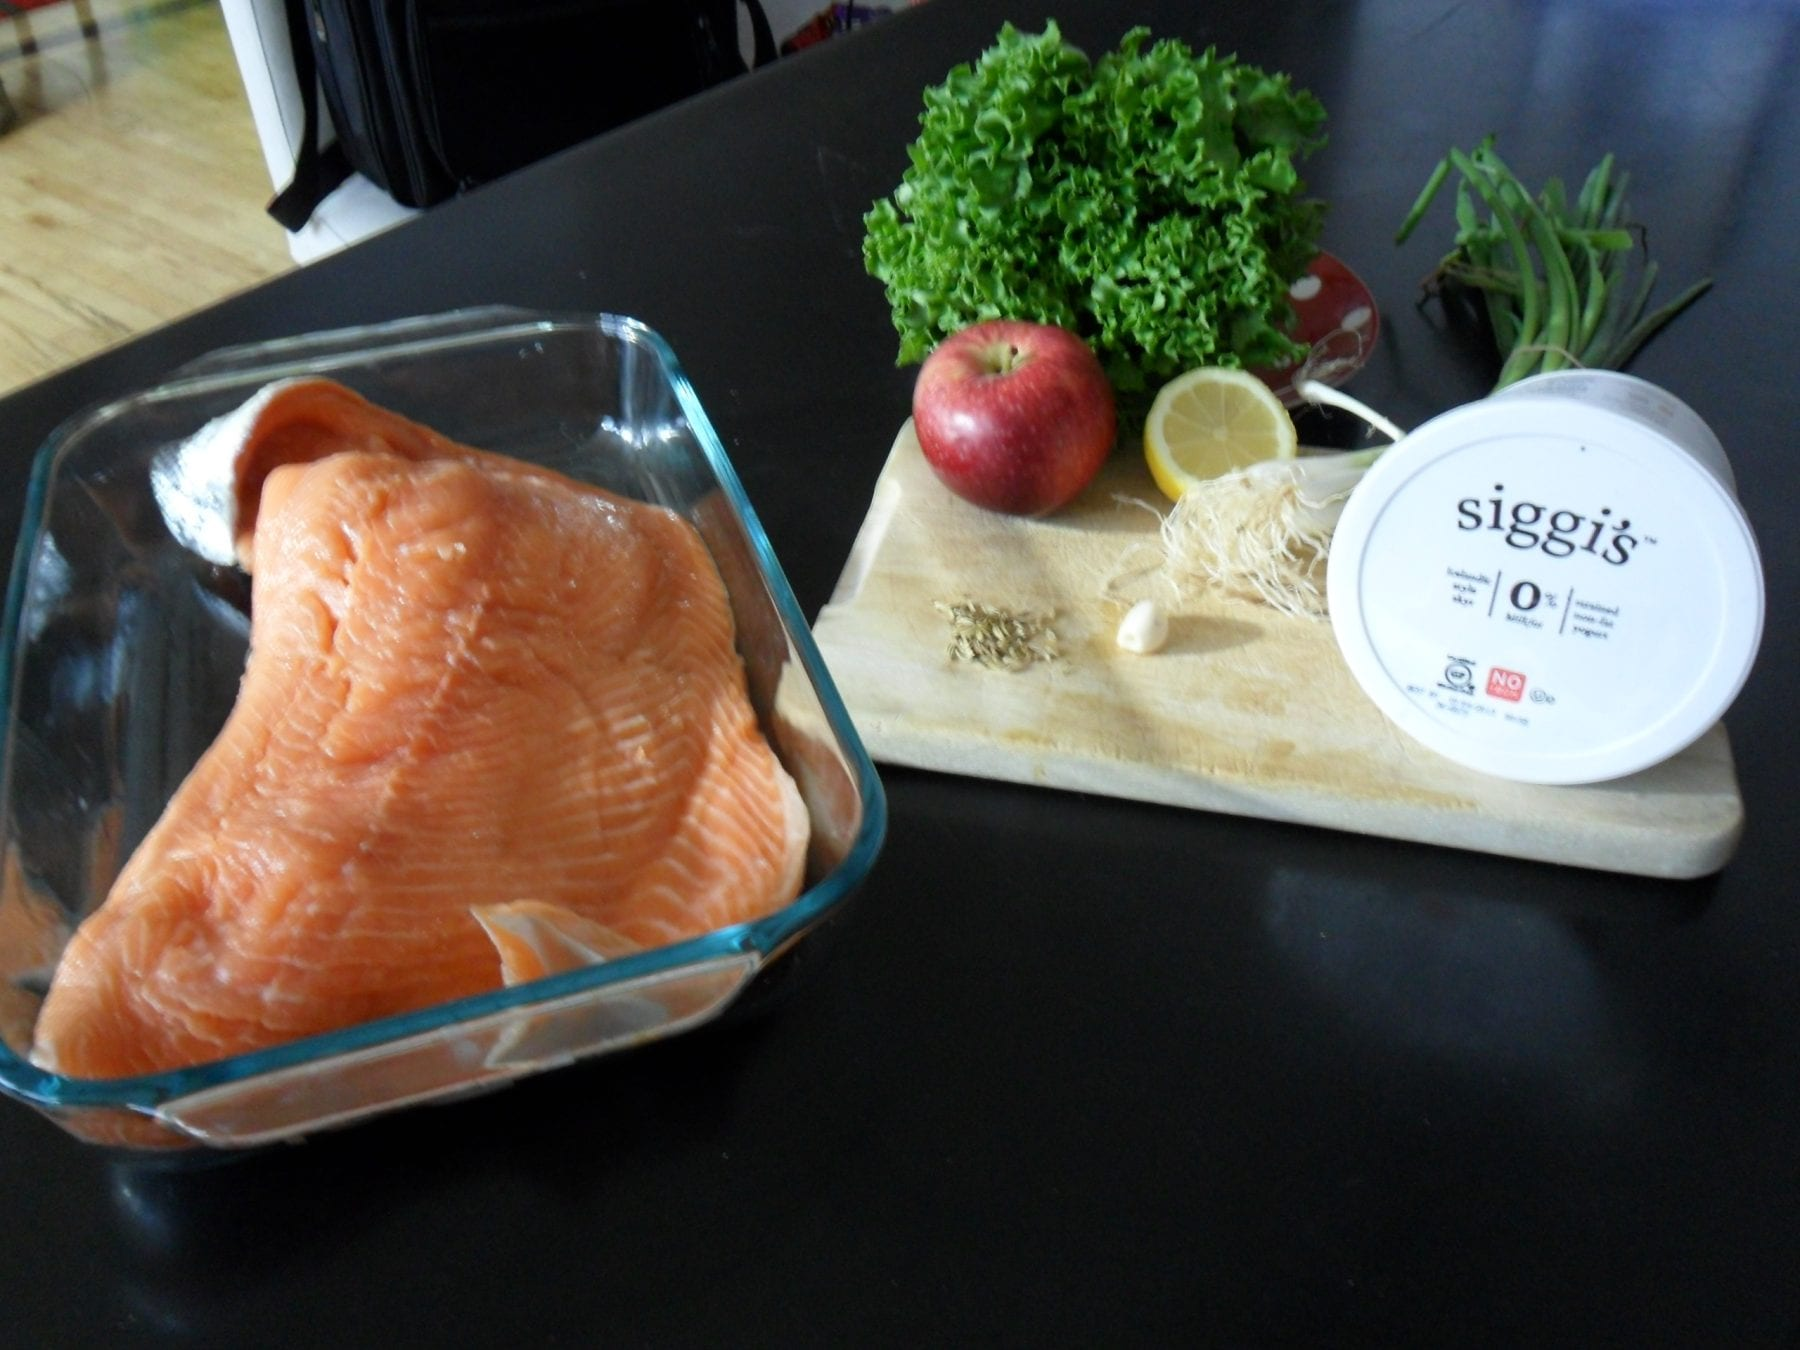 Salmon and Siggy's